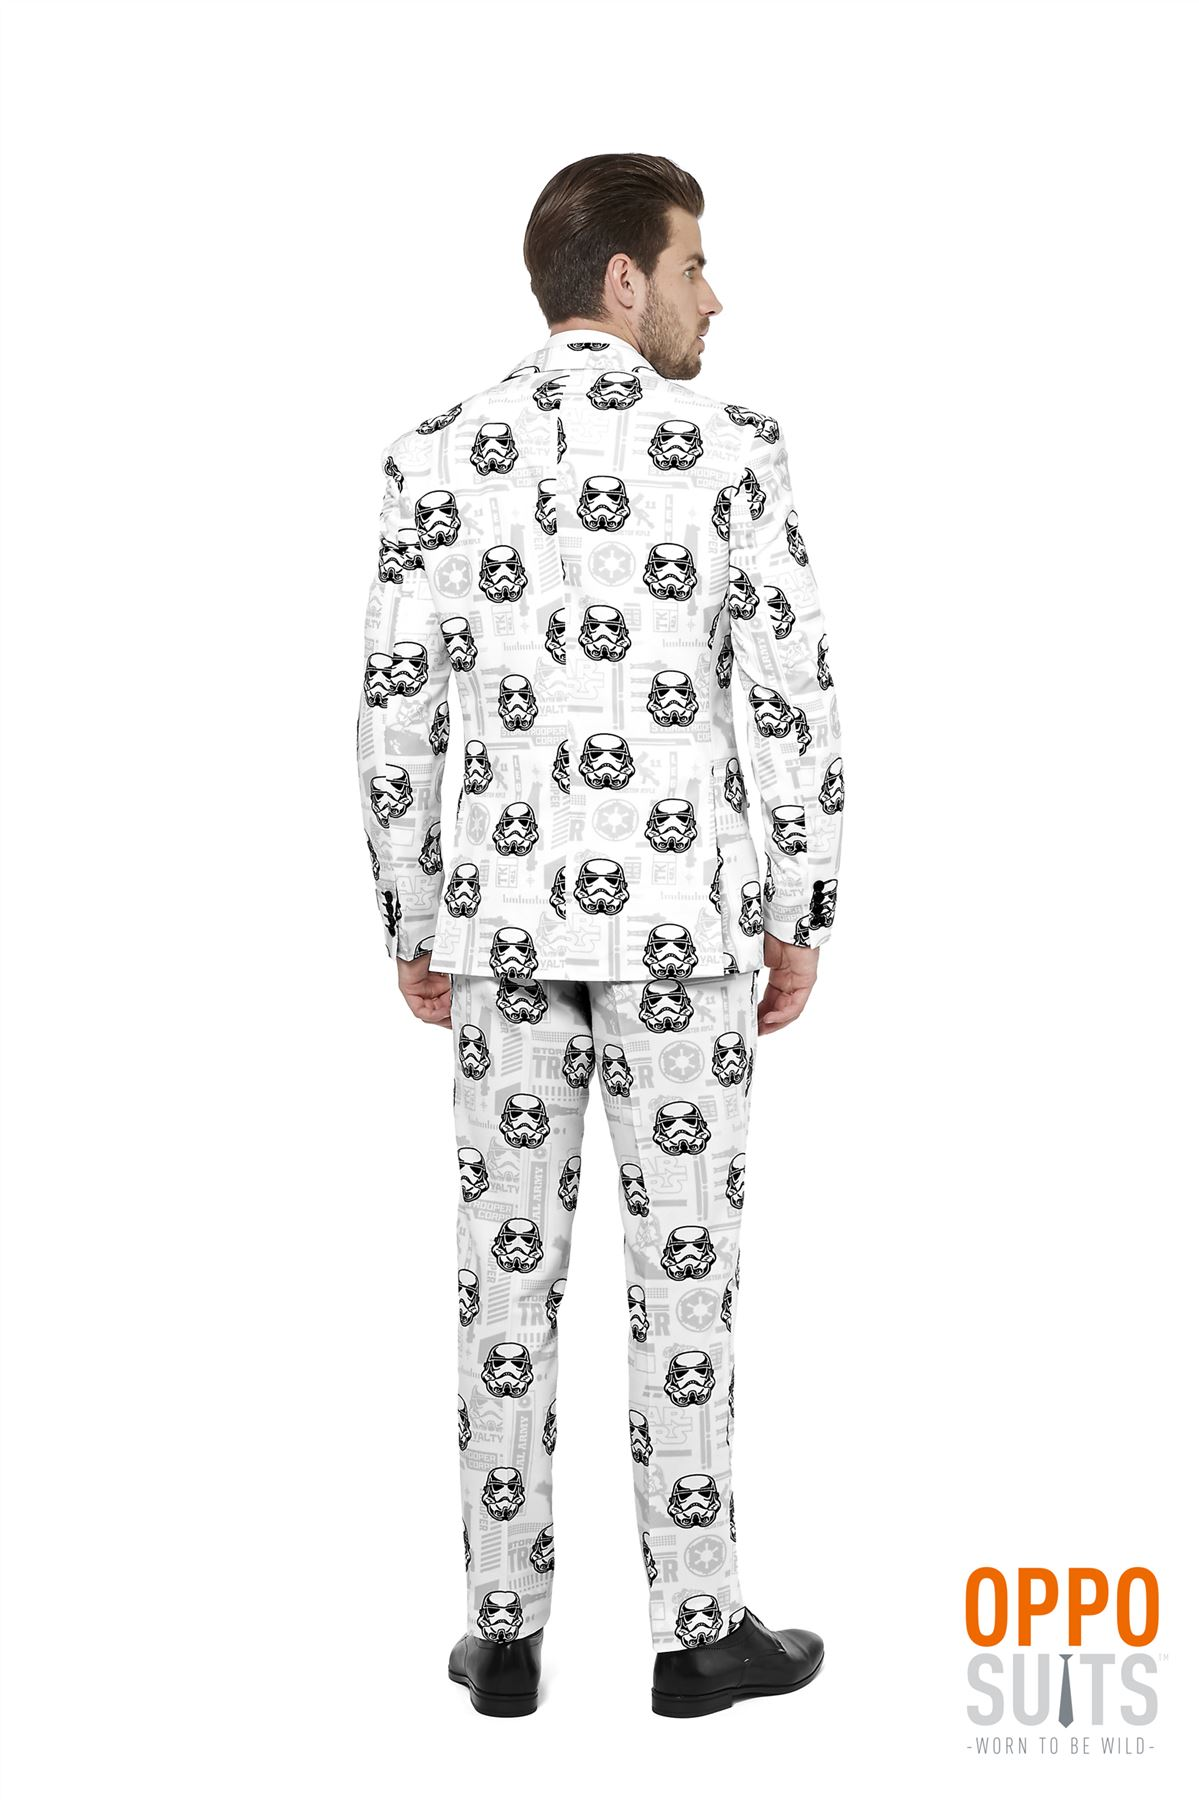 Homme star wars stormtrooper opposuit costume robe fantaisie fantaisie fantaisie costume adulte tenue 46a74e